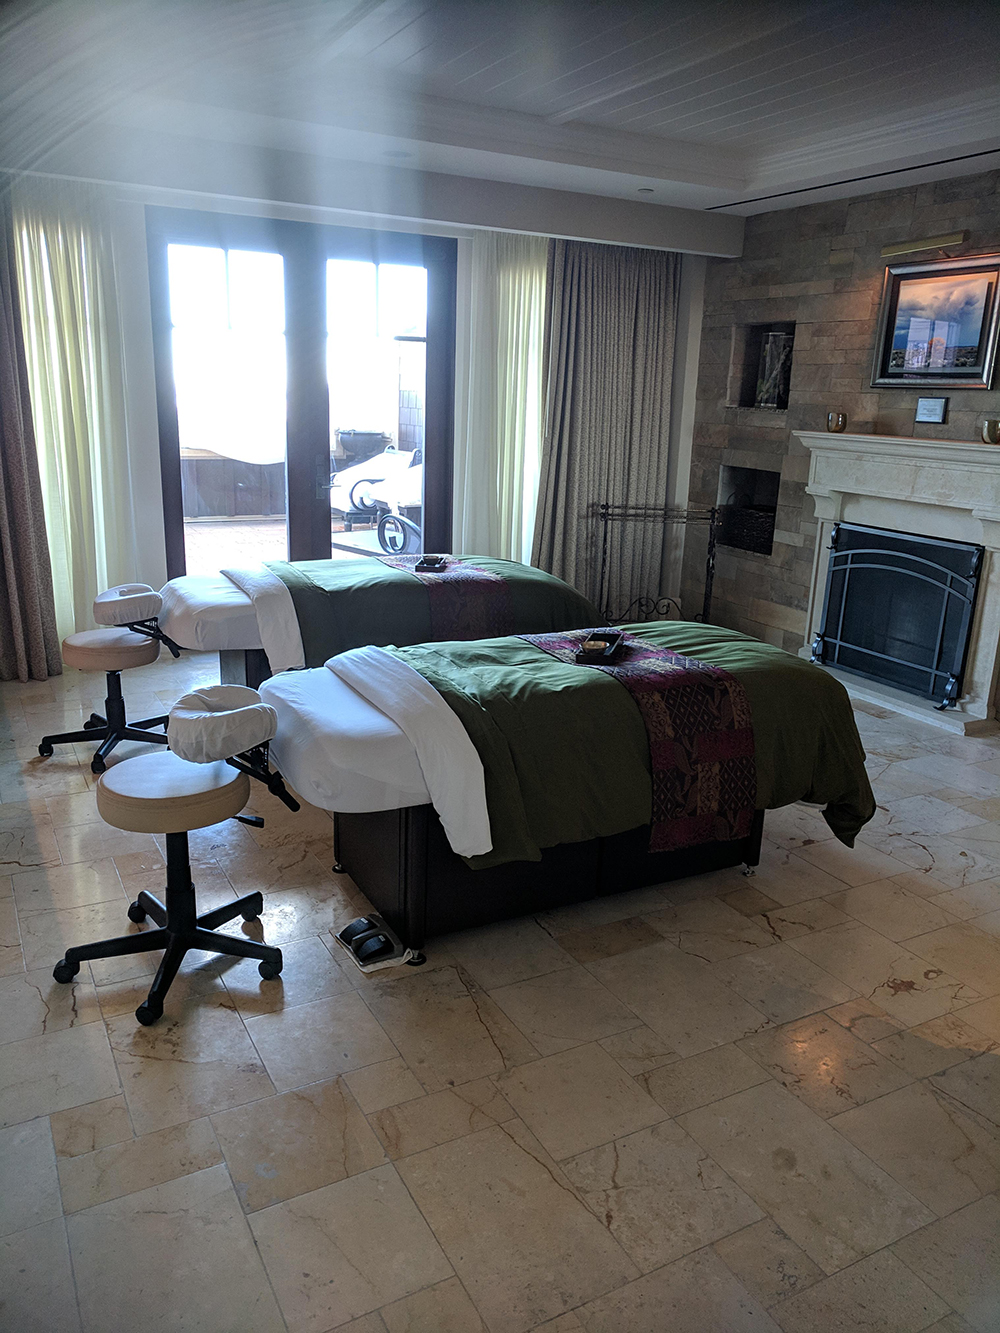 A look inside the Serenity Couples Treatment Room.